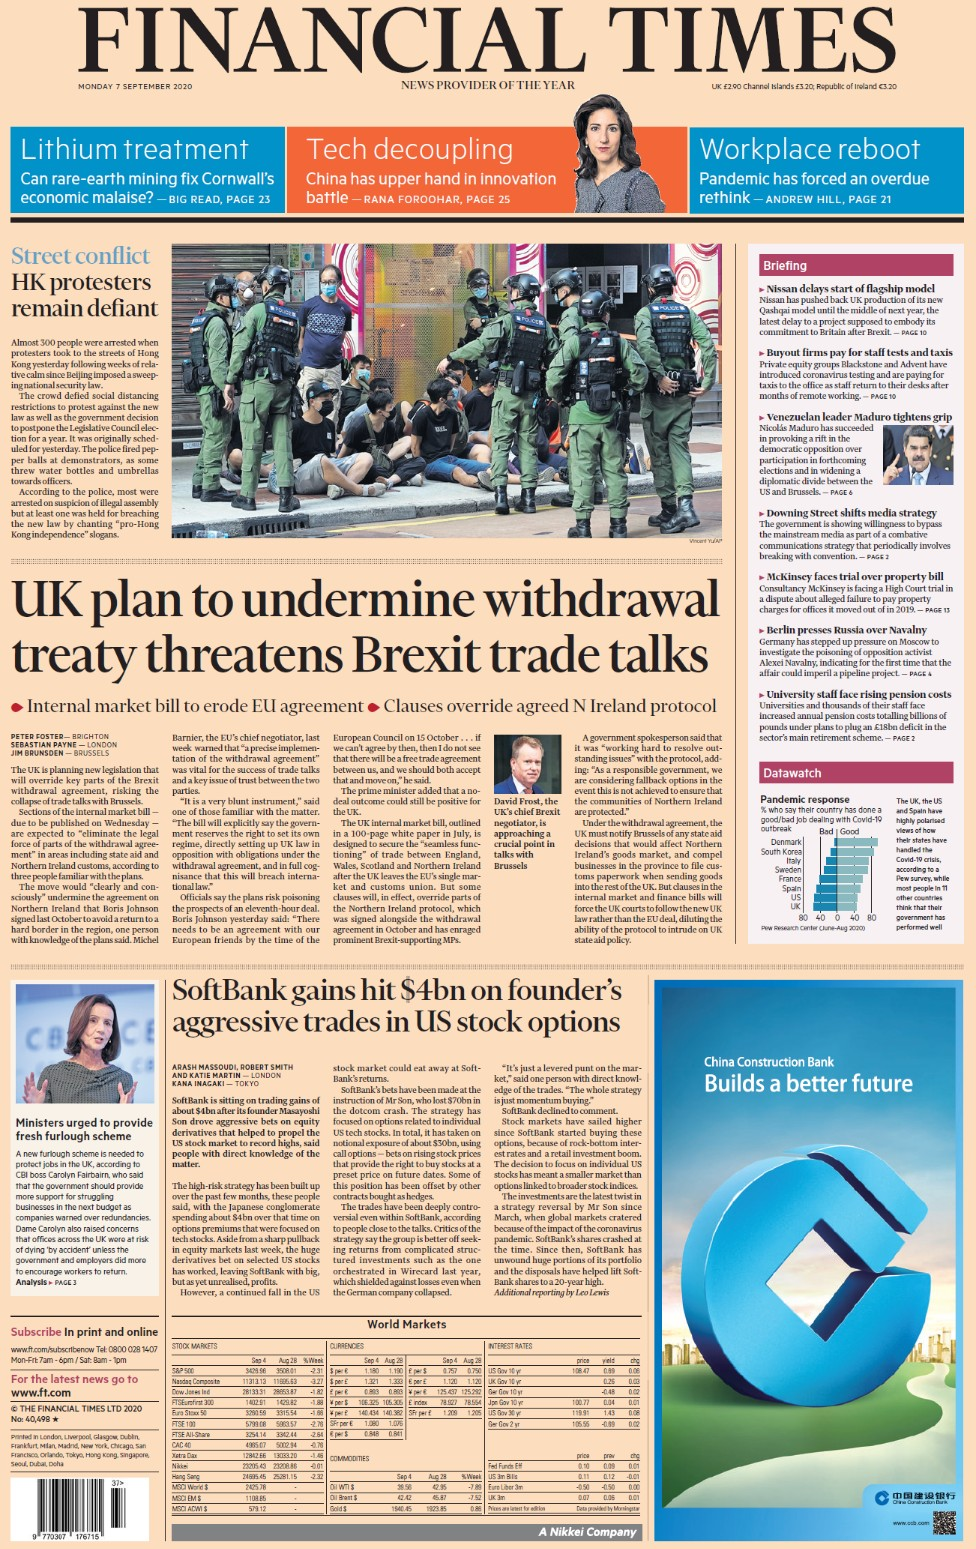 Financial Times front page, 7/9/20